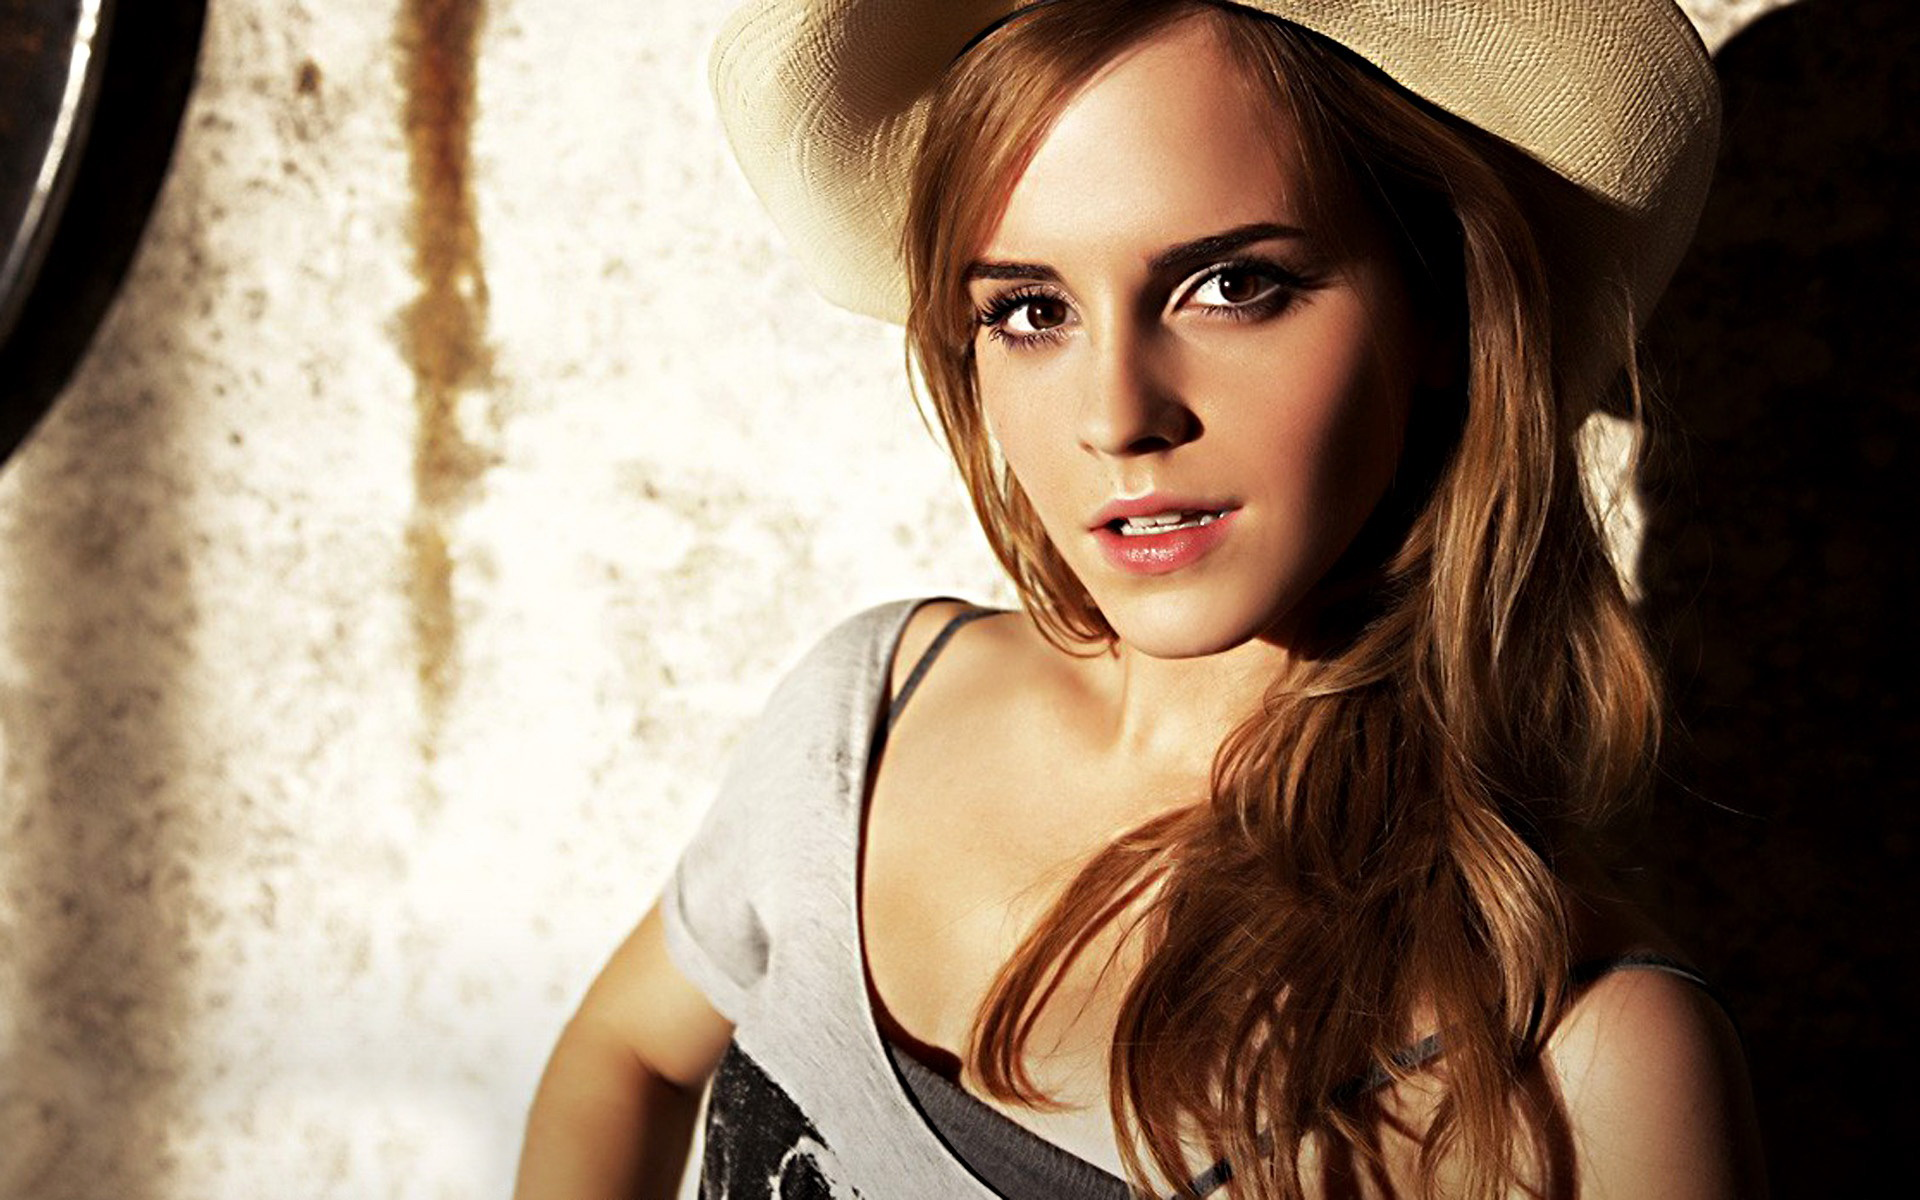 Emma-Watson-HD-Images-Free-download-latest-Emma-Watson-HD-Images-for-Computer-Mobile-iPhone-iPa-wallpaper-wp3605365